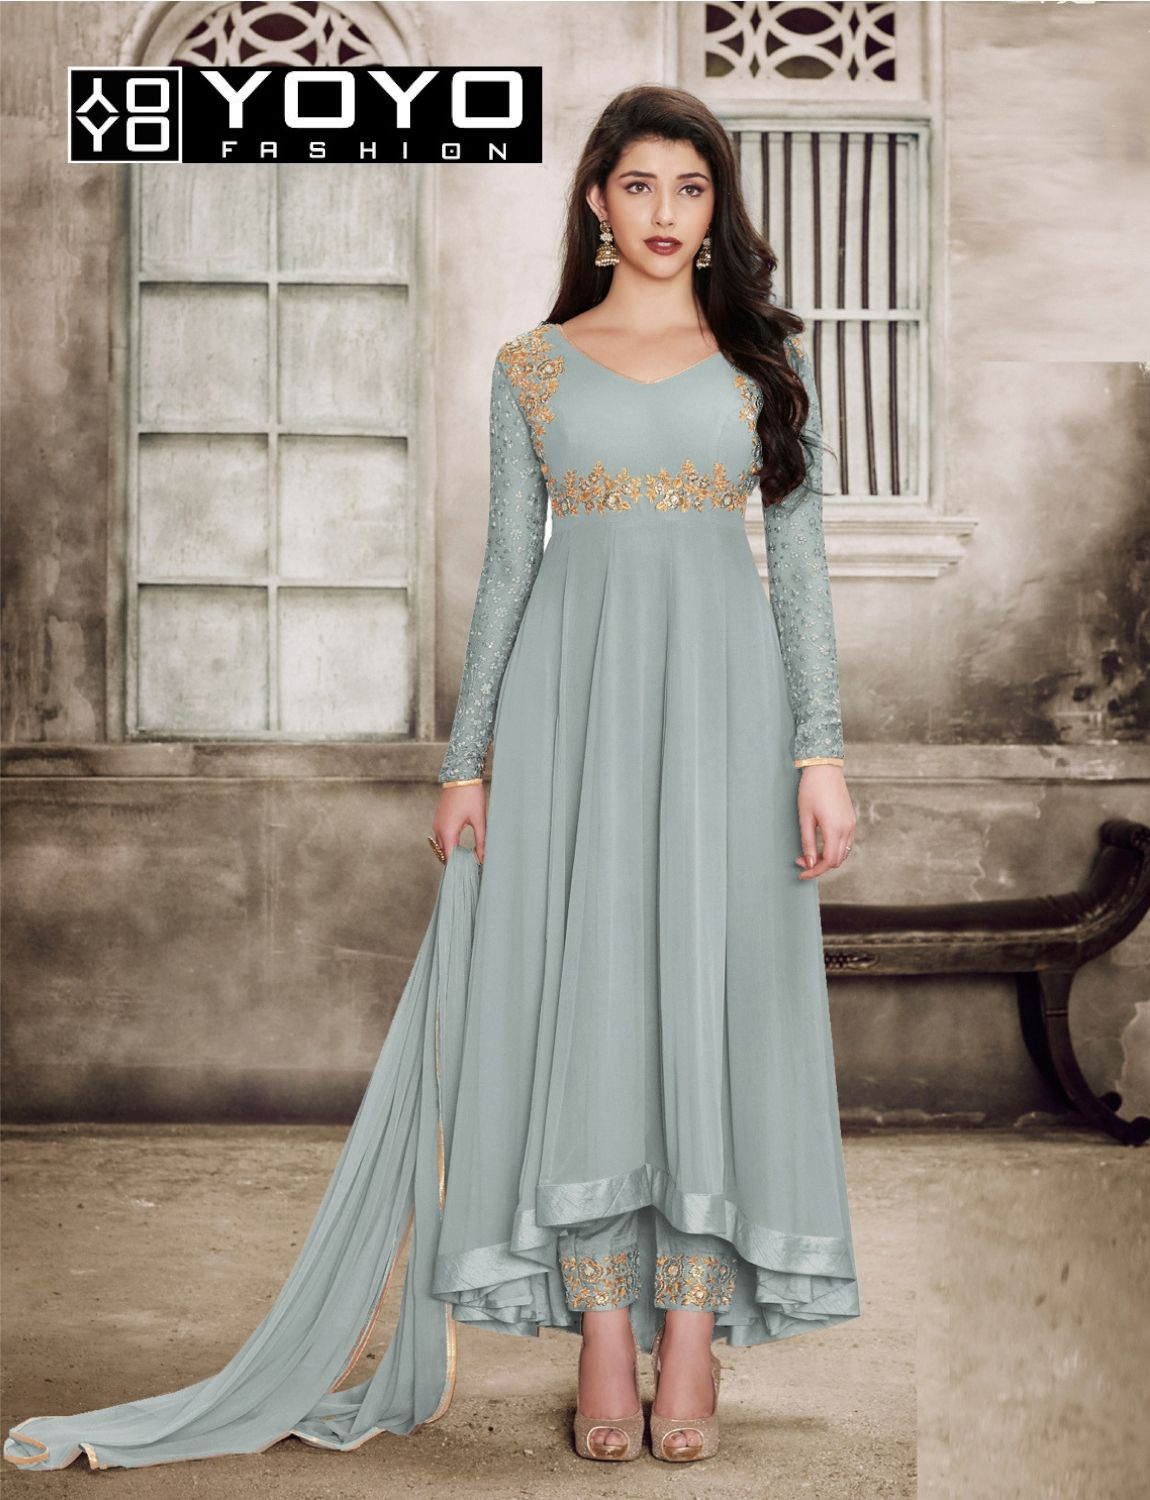 aafc9b0a556 Sparky Grey  AnarkaliSalwarSuit Online On  YOYOFashion. Call or Whatsapp  for more info here  +91 8000588688  Dresses  Offers  SalwarSuitt  GreySuit  ...